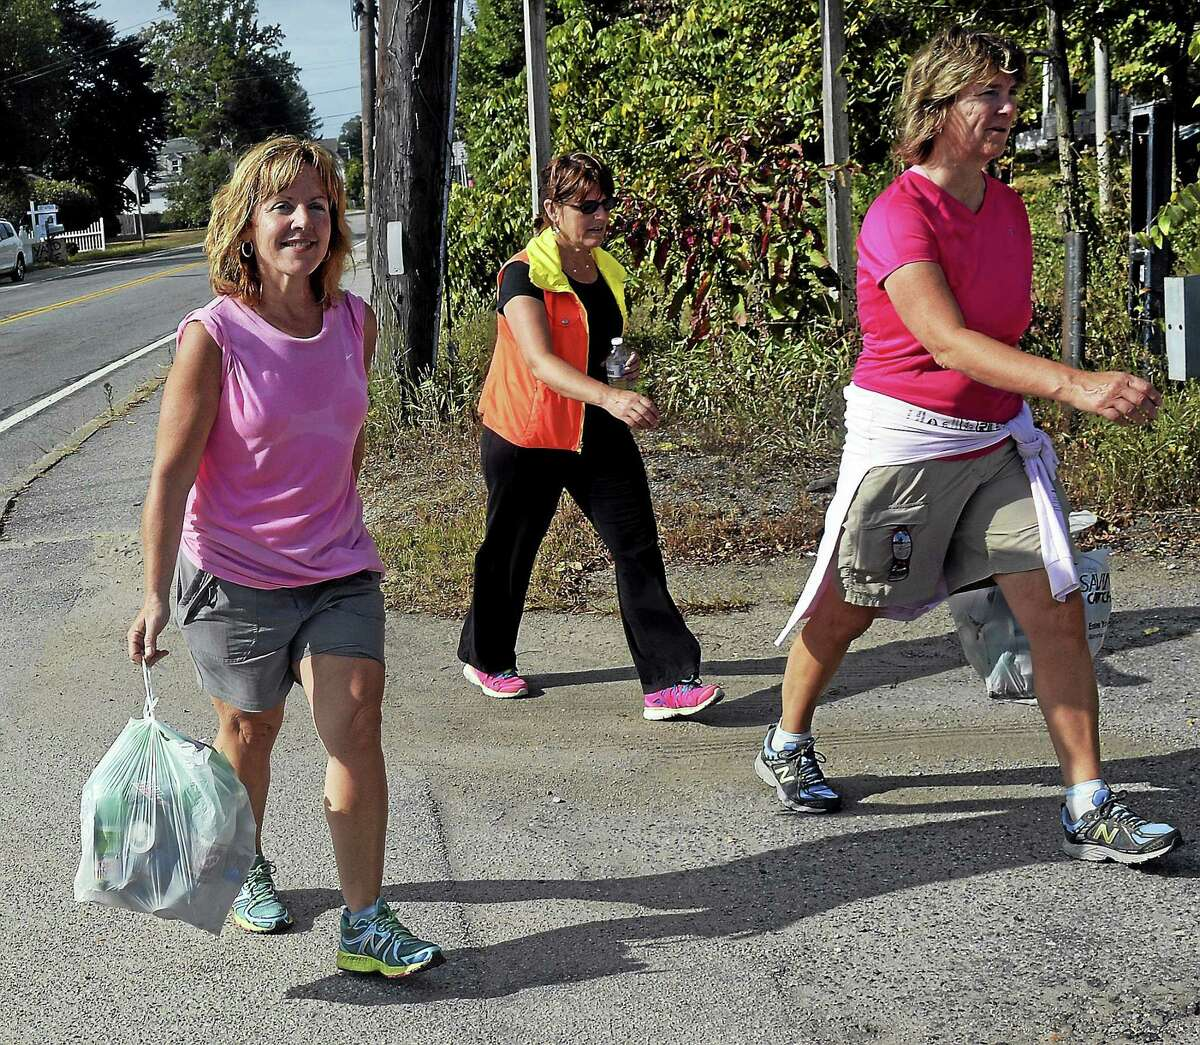 In this Sept. 21, 2014 photo, Deb McGowan of North Stonington, Conn., left, walks along U.S. Route 3 while picking up recyclables with friends Tracy Stedman, center, Linda Stefanski, right, in Ashaway, R.I., Over the past year, McGowan, 47, has redeemed 10,000 beverage containers to raise her $500 fundraising commitment for the ninth annual Terri Brodeur Breast Cancer Foundation Walk Across Southeastern Connecticut.